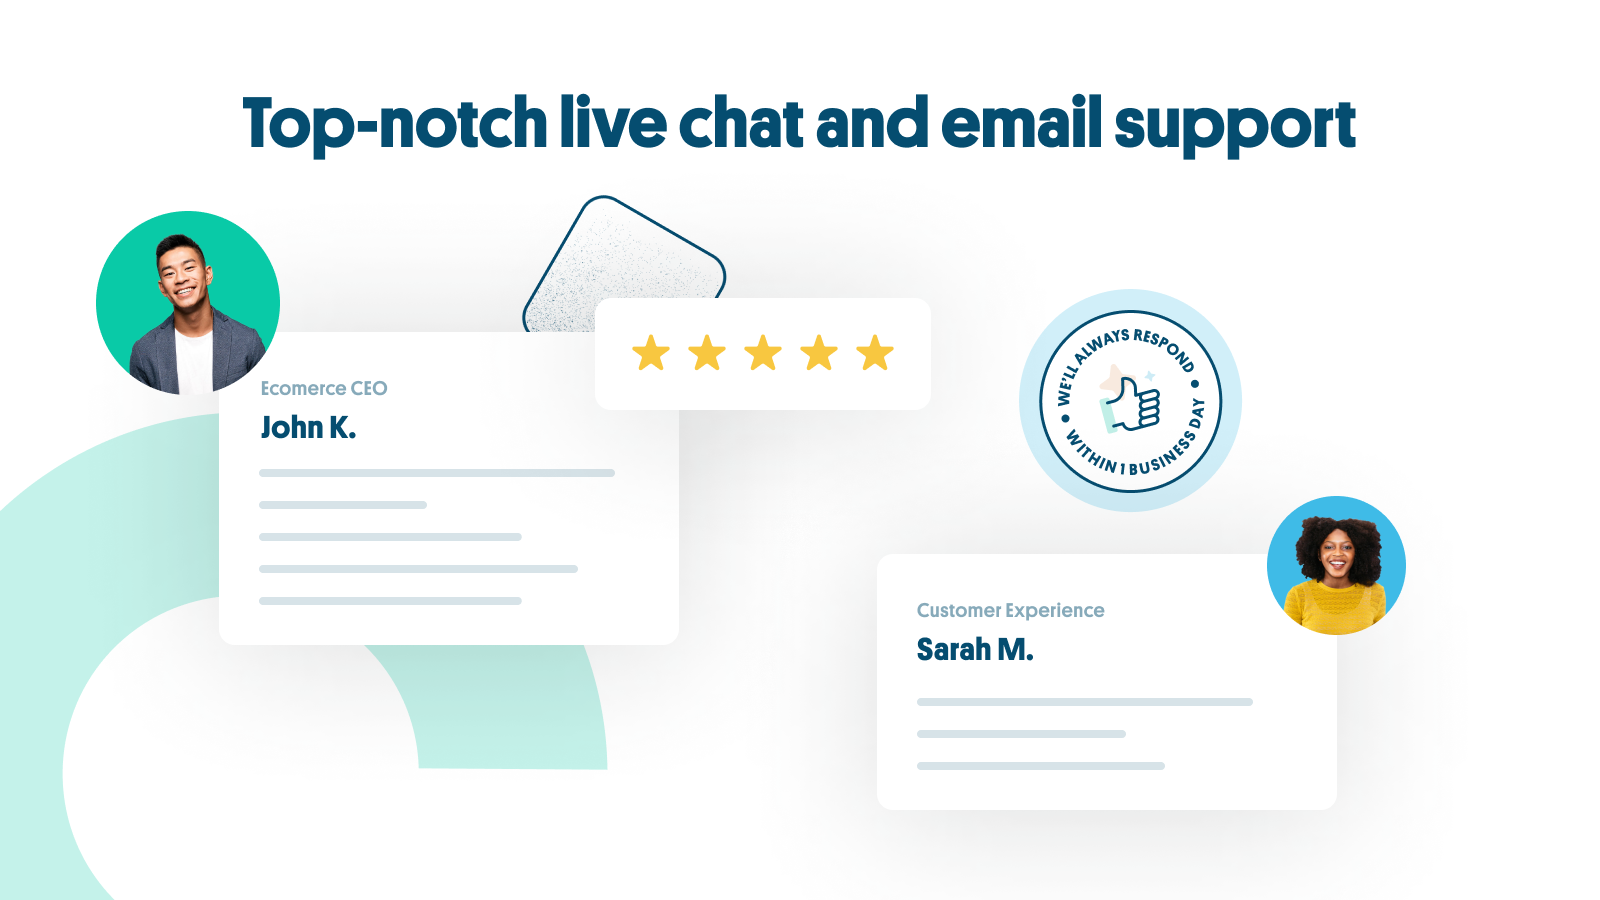 Top-notch live chat and email support